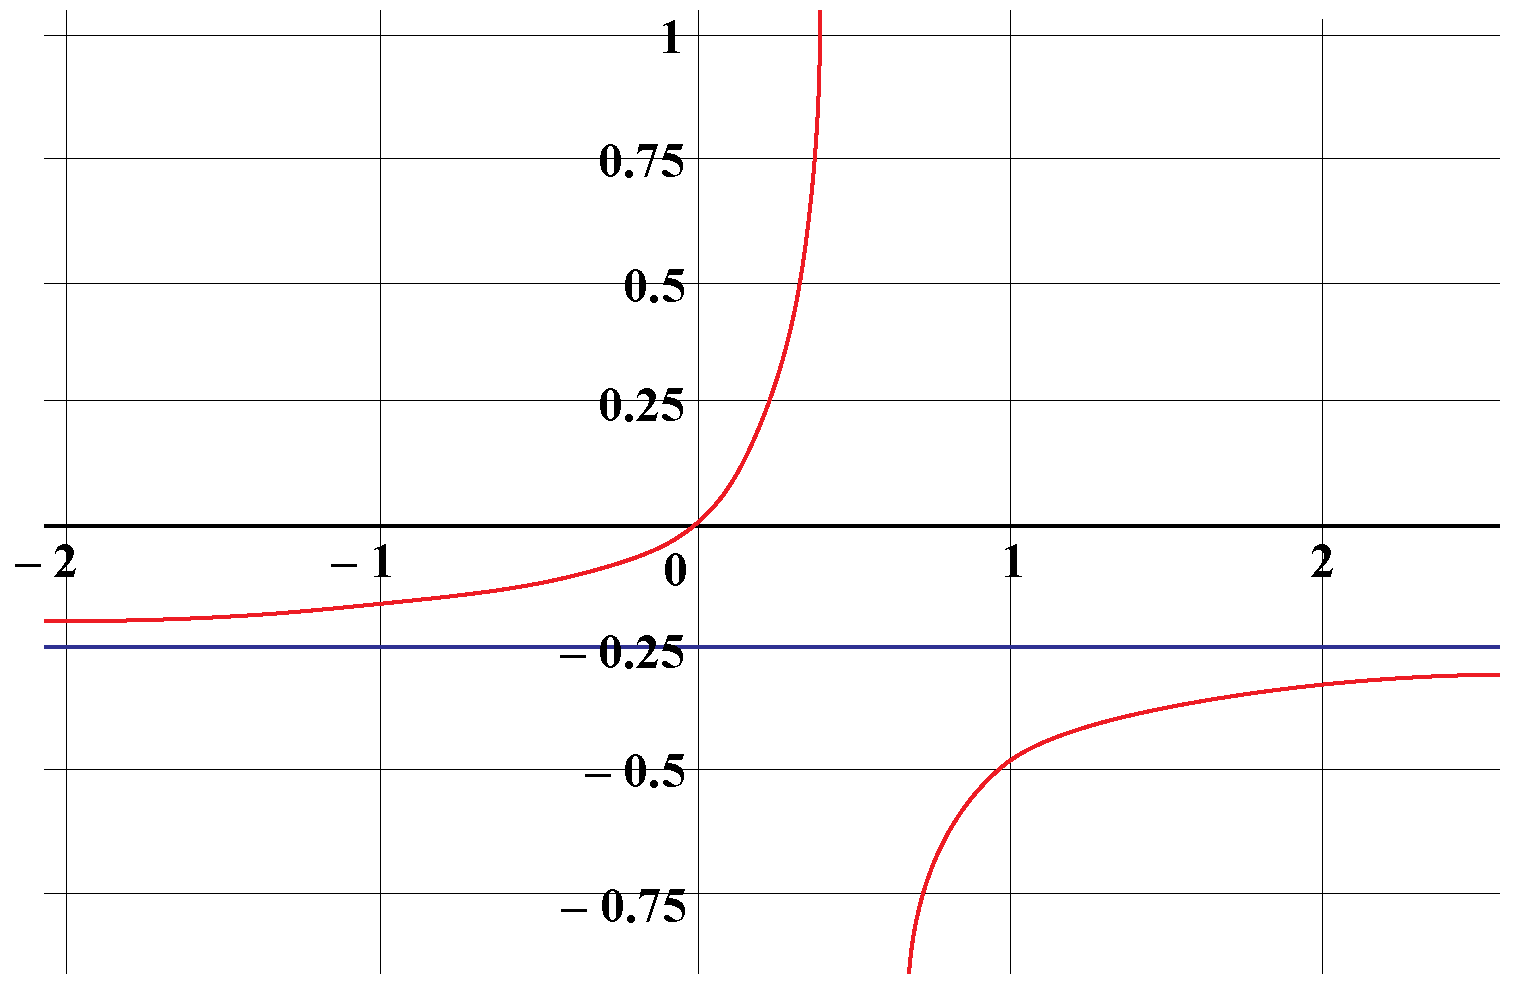 Range of a rational function: A curve and a horizontal line along y=-0.25 are shown.